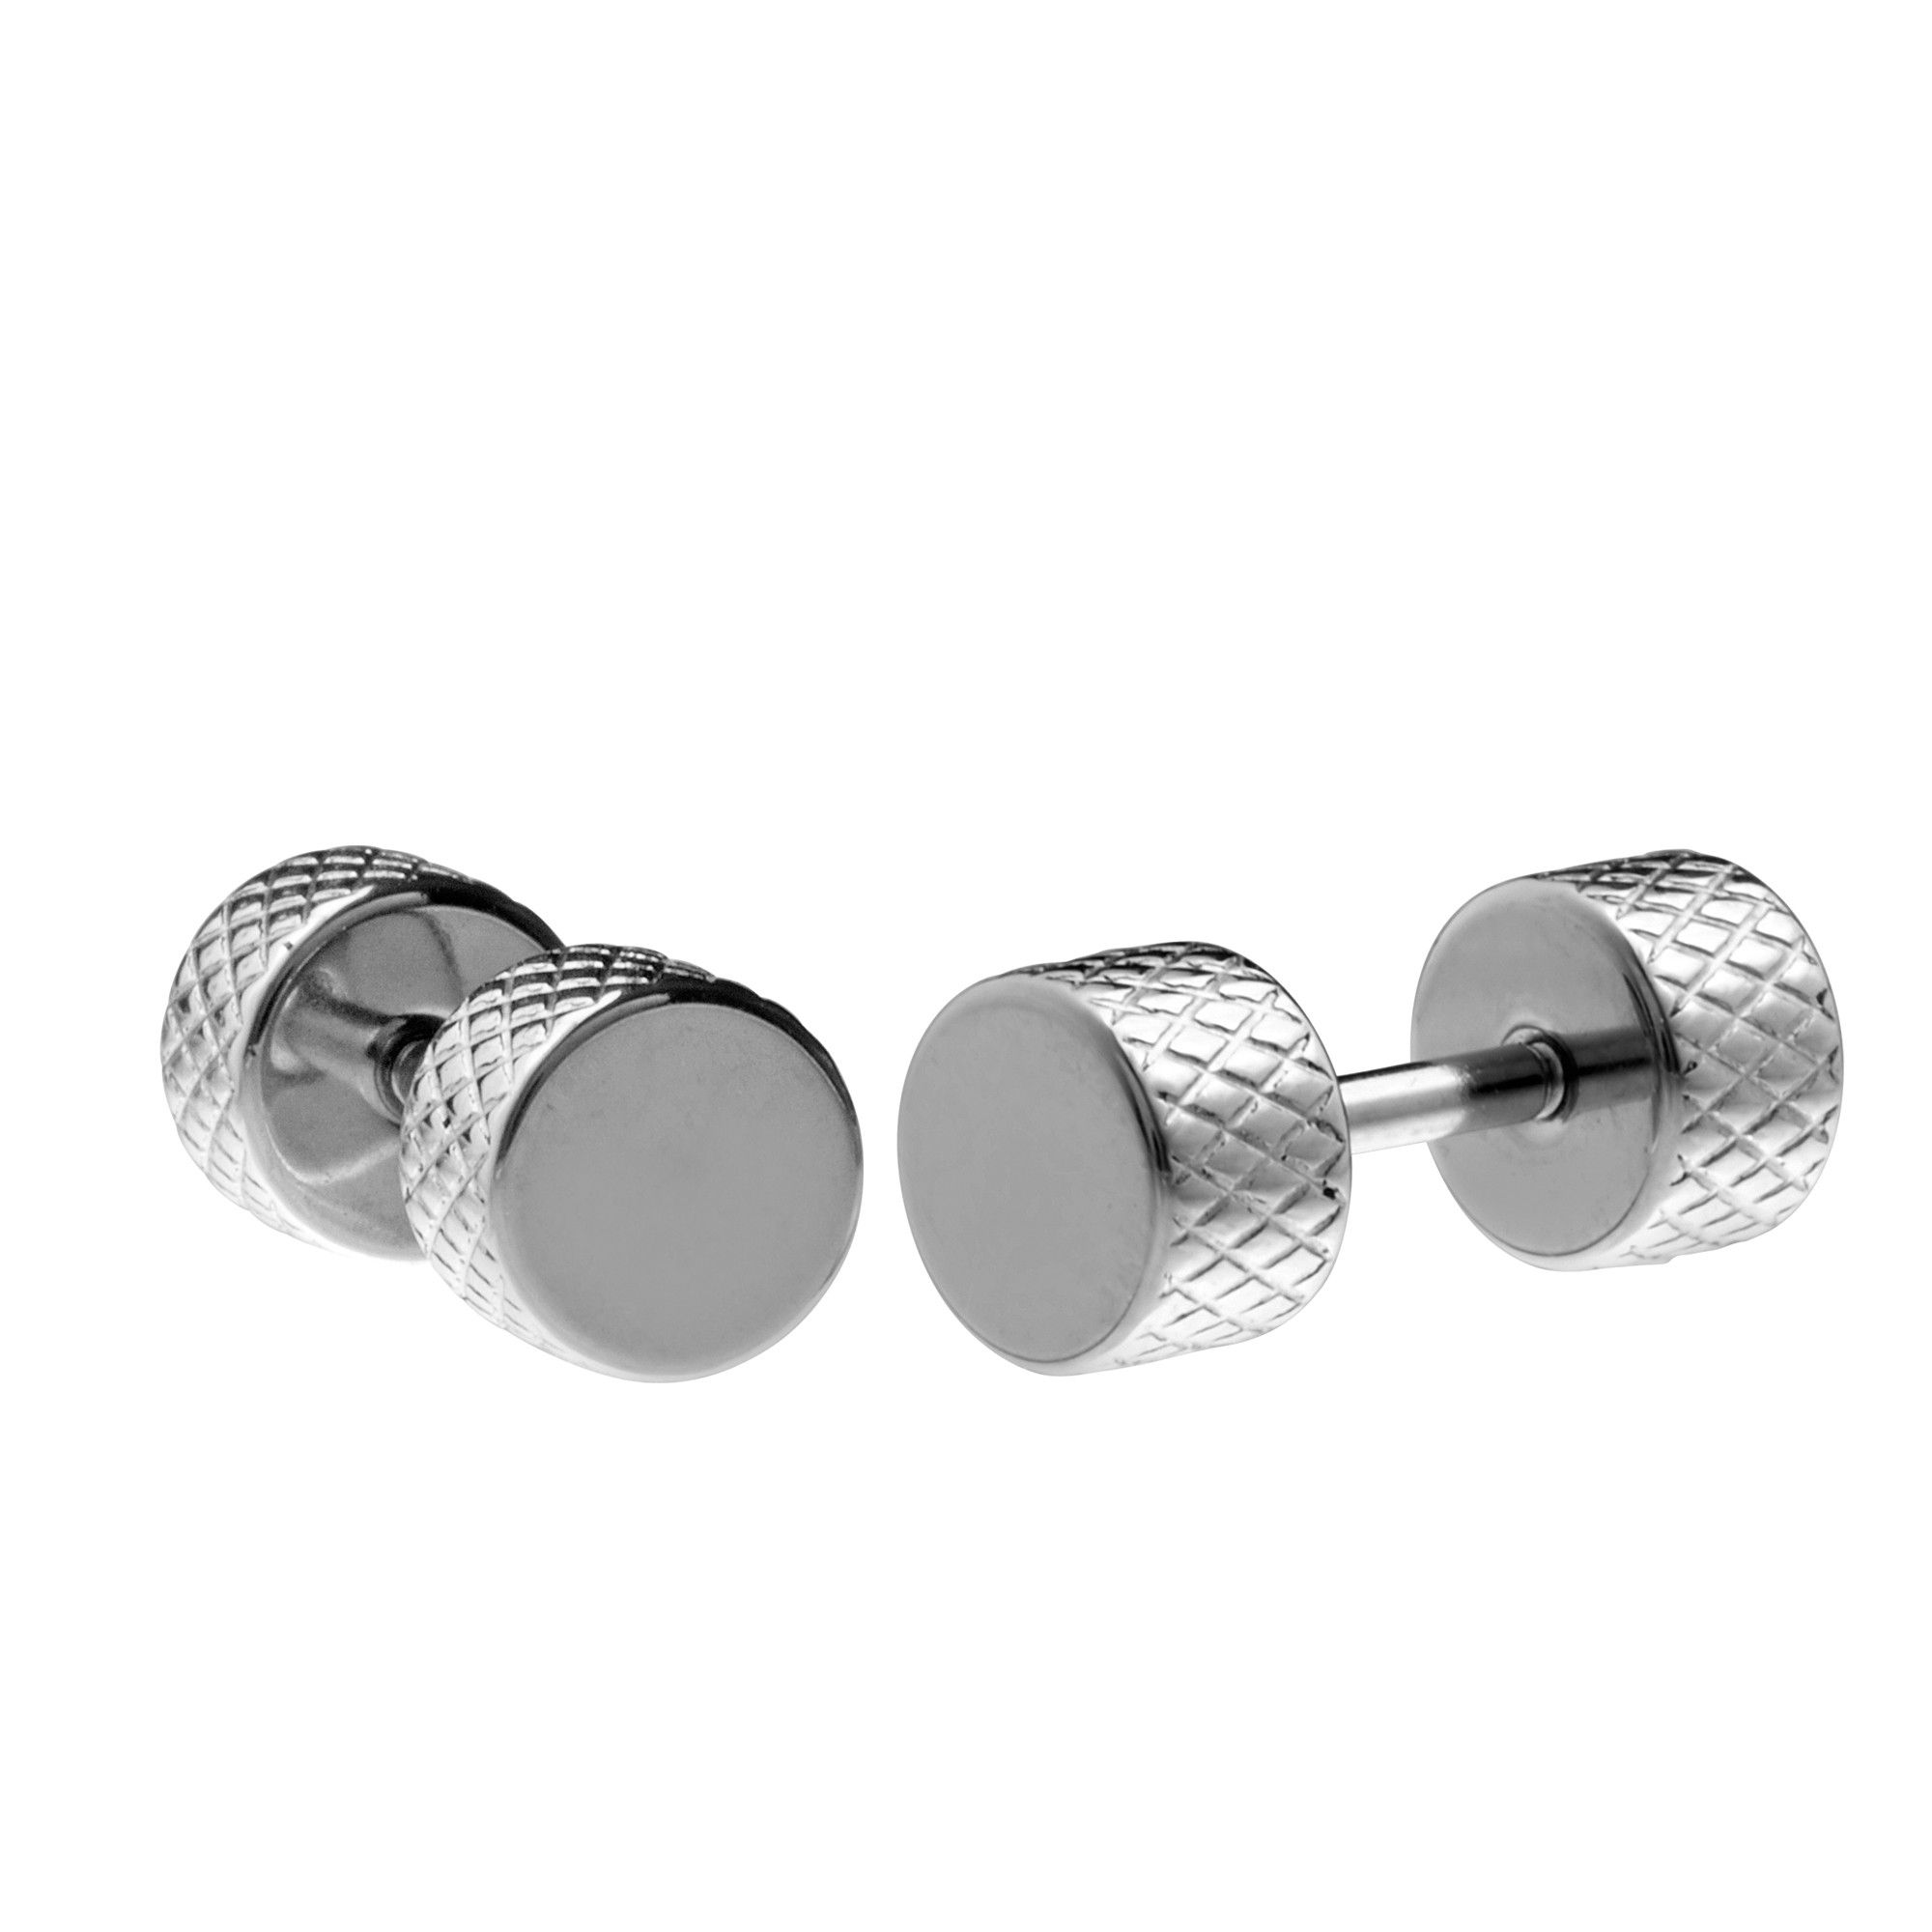 on accessories from erect men middle finger earrings for fashion punk mens in item steel ear women stainless jewelry cool hypoallergenic stud